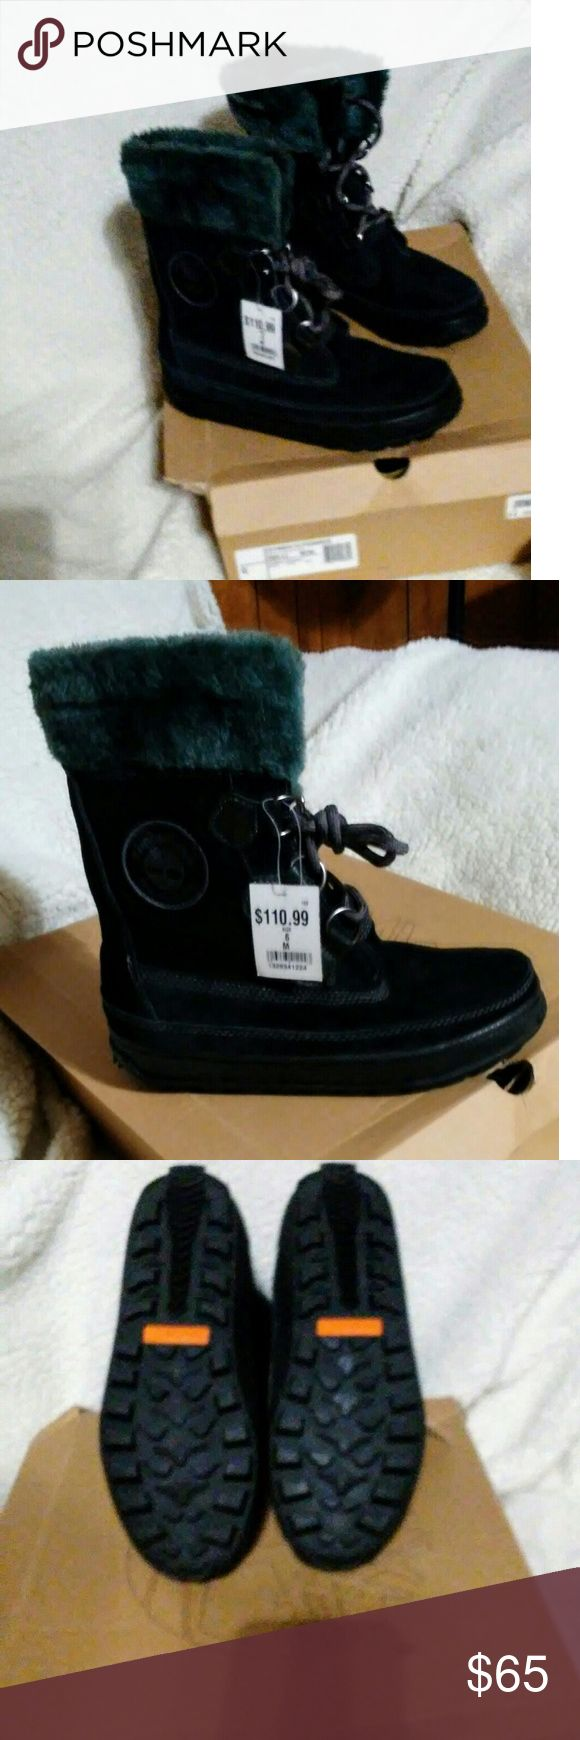 NWT Timberland MUKLUK Lace Black Boots Warm & Comfy (These are priced 1/2 of the sale price) NWT & box - Never Worn  size 6 - runs big - fits like 6 1/2 - 7. Timberland Shoes Winter & Rain Boots